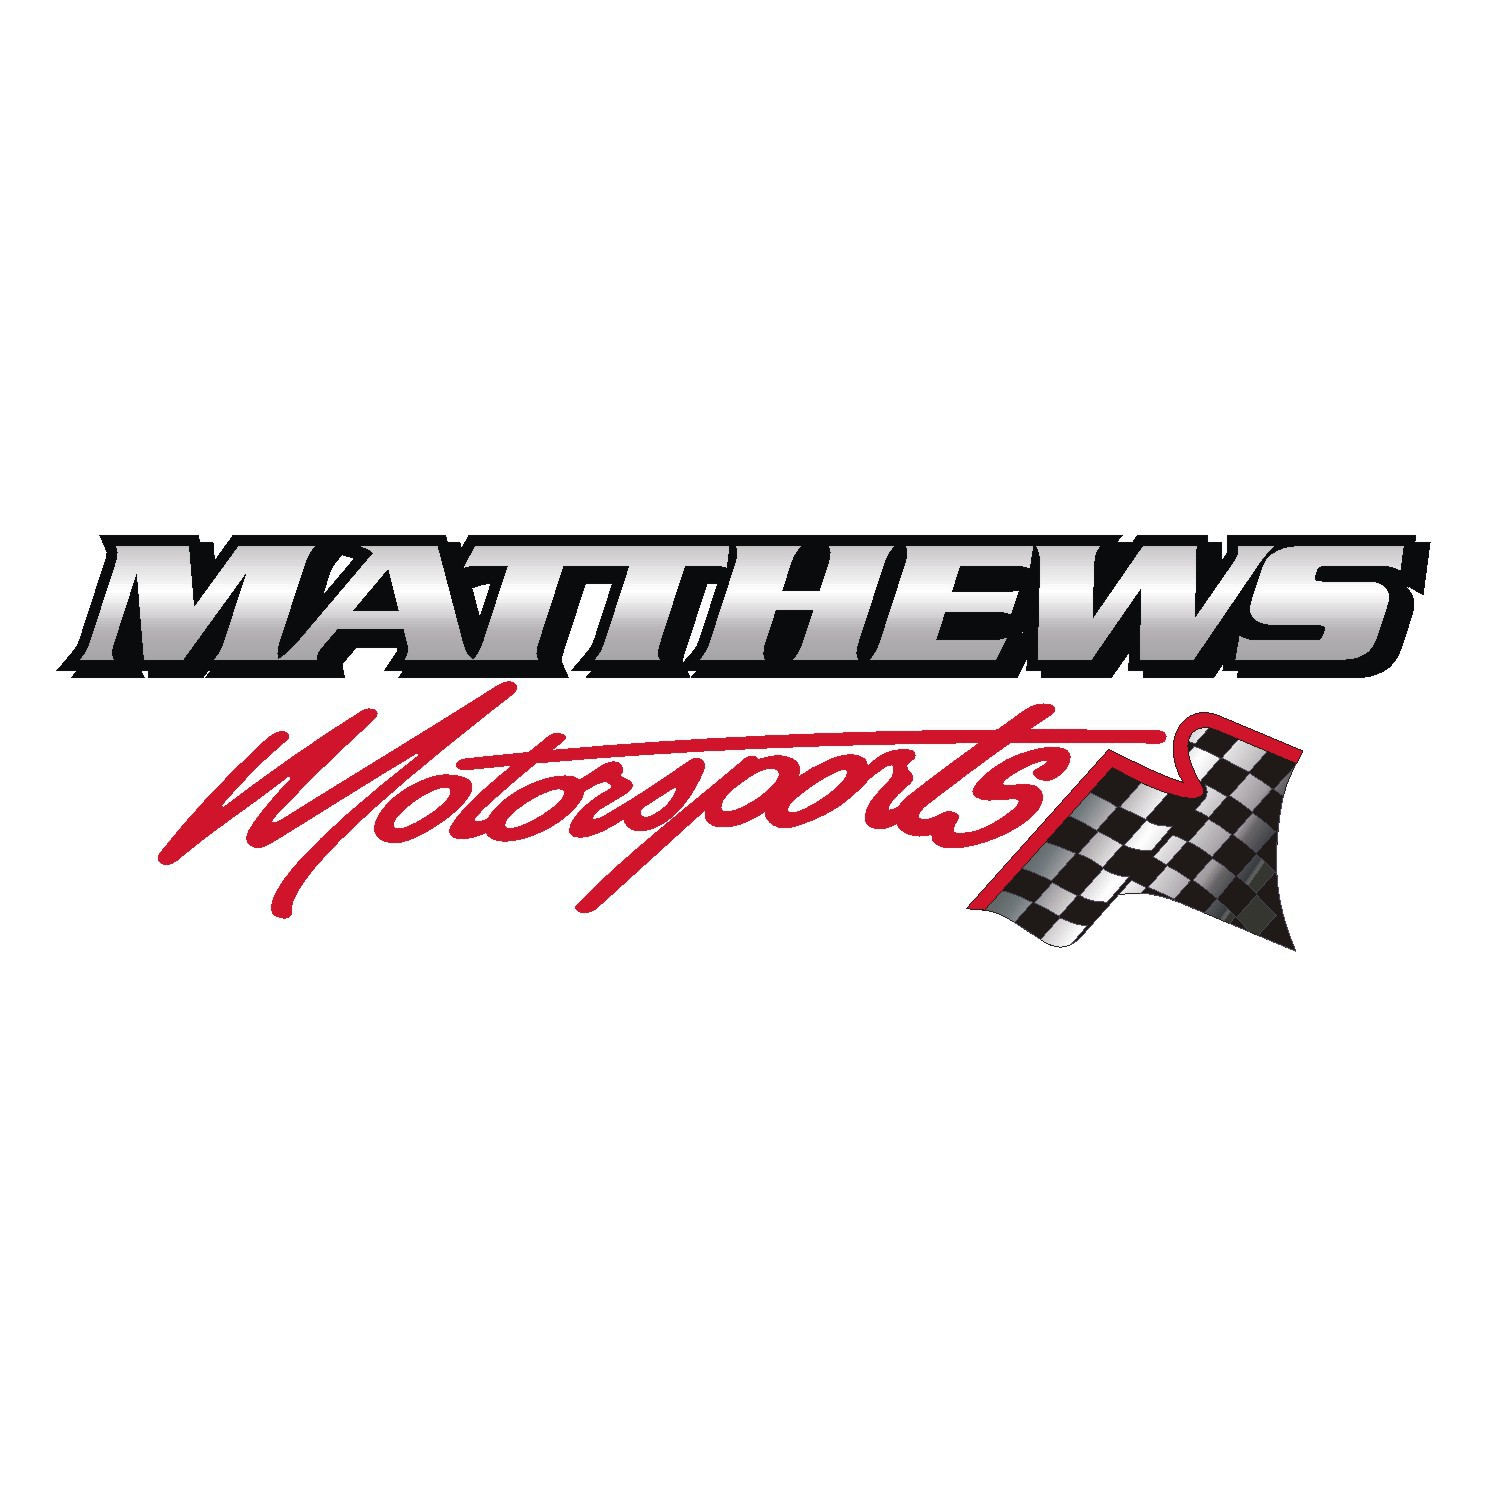 Create the next logo for Matthews Motorsports